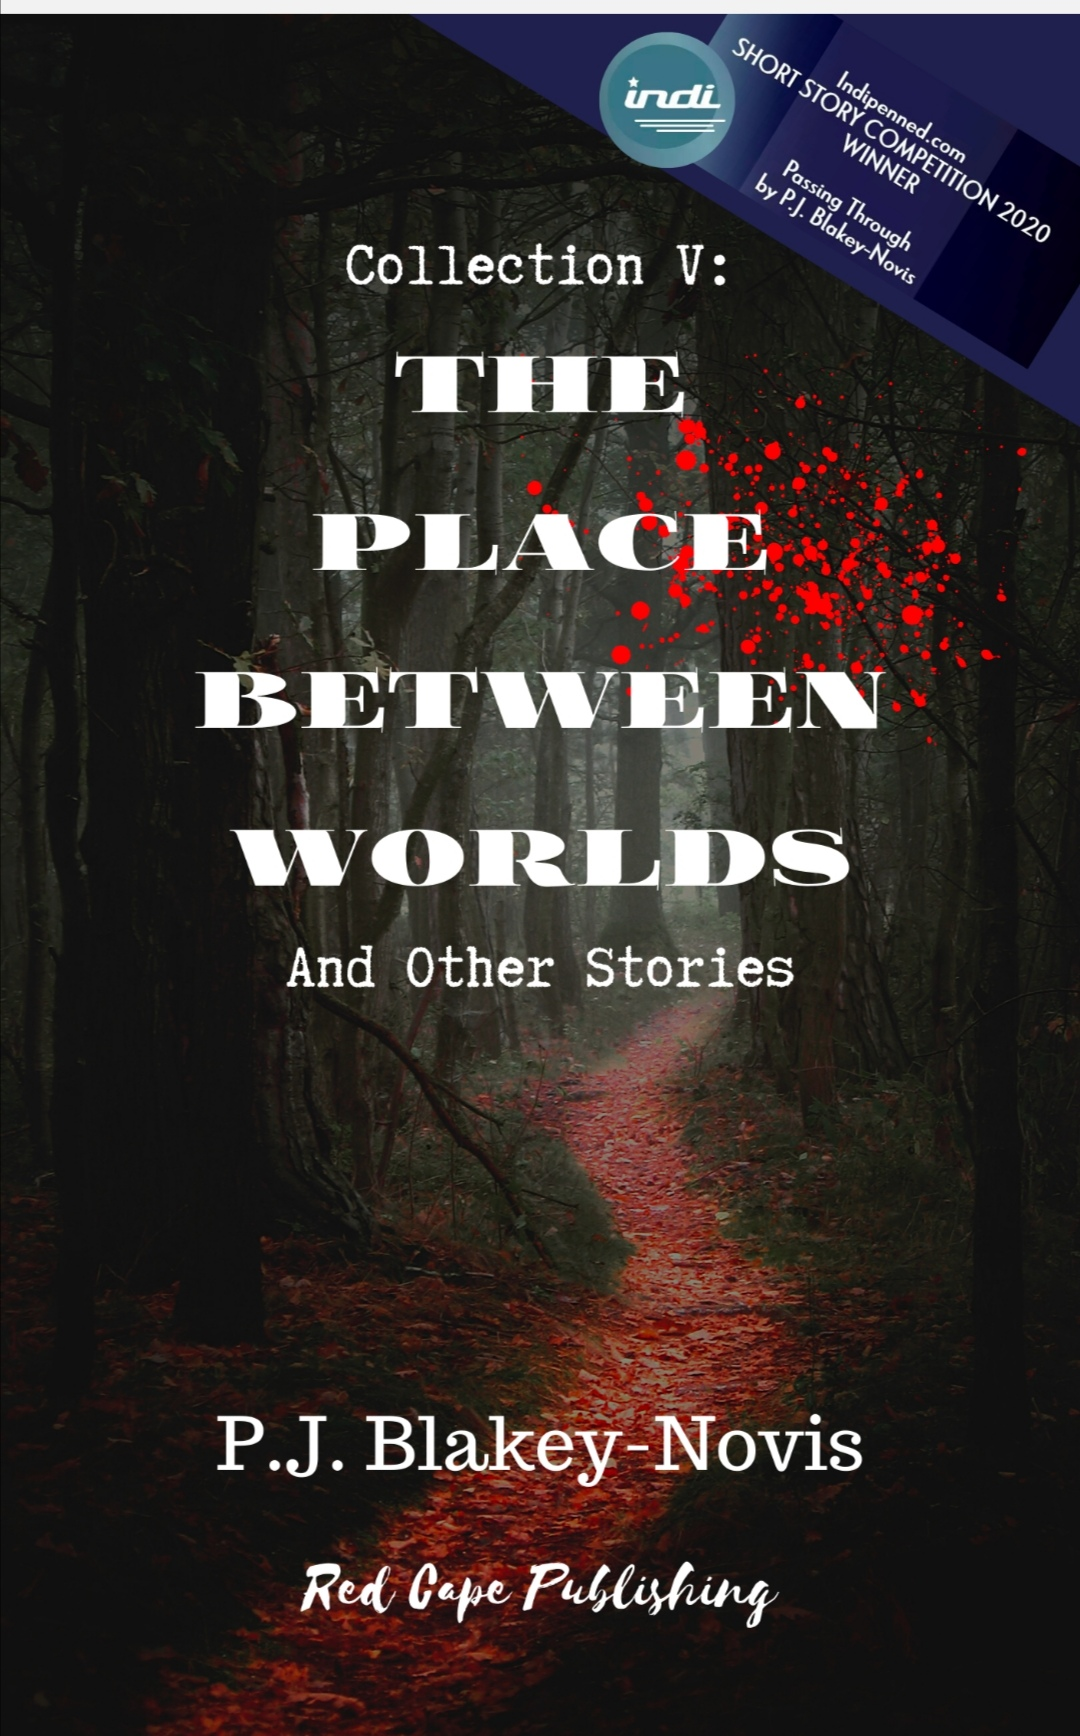 'THE PLACE BETWEEN WORLDS & OTHER STORIES' FROM P.J. BLAKEY-NOVIS